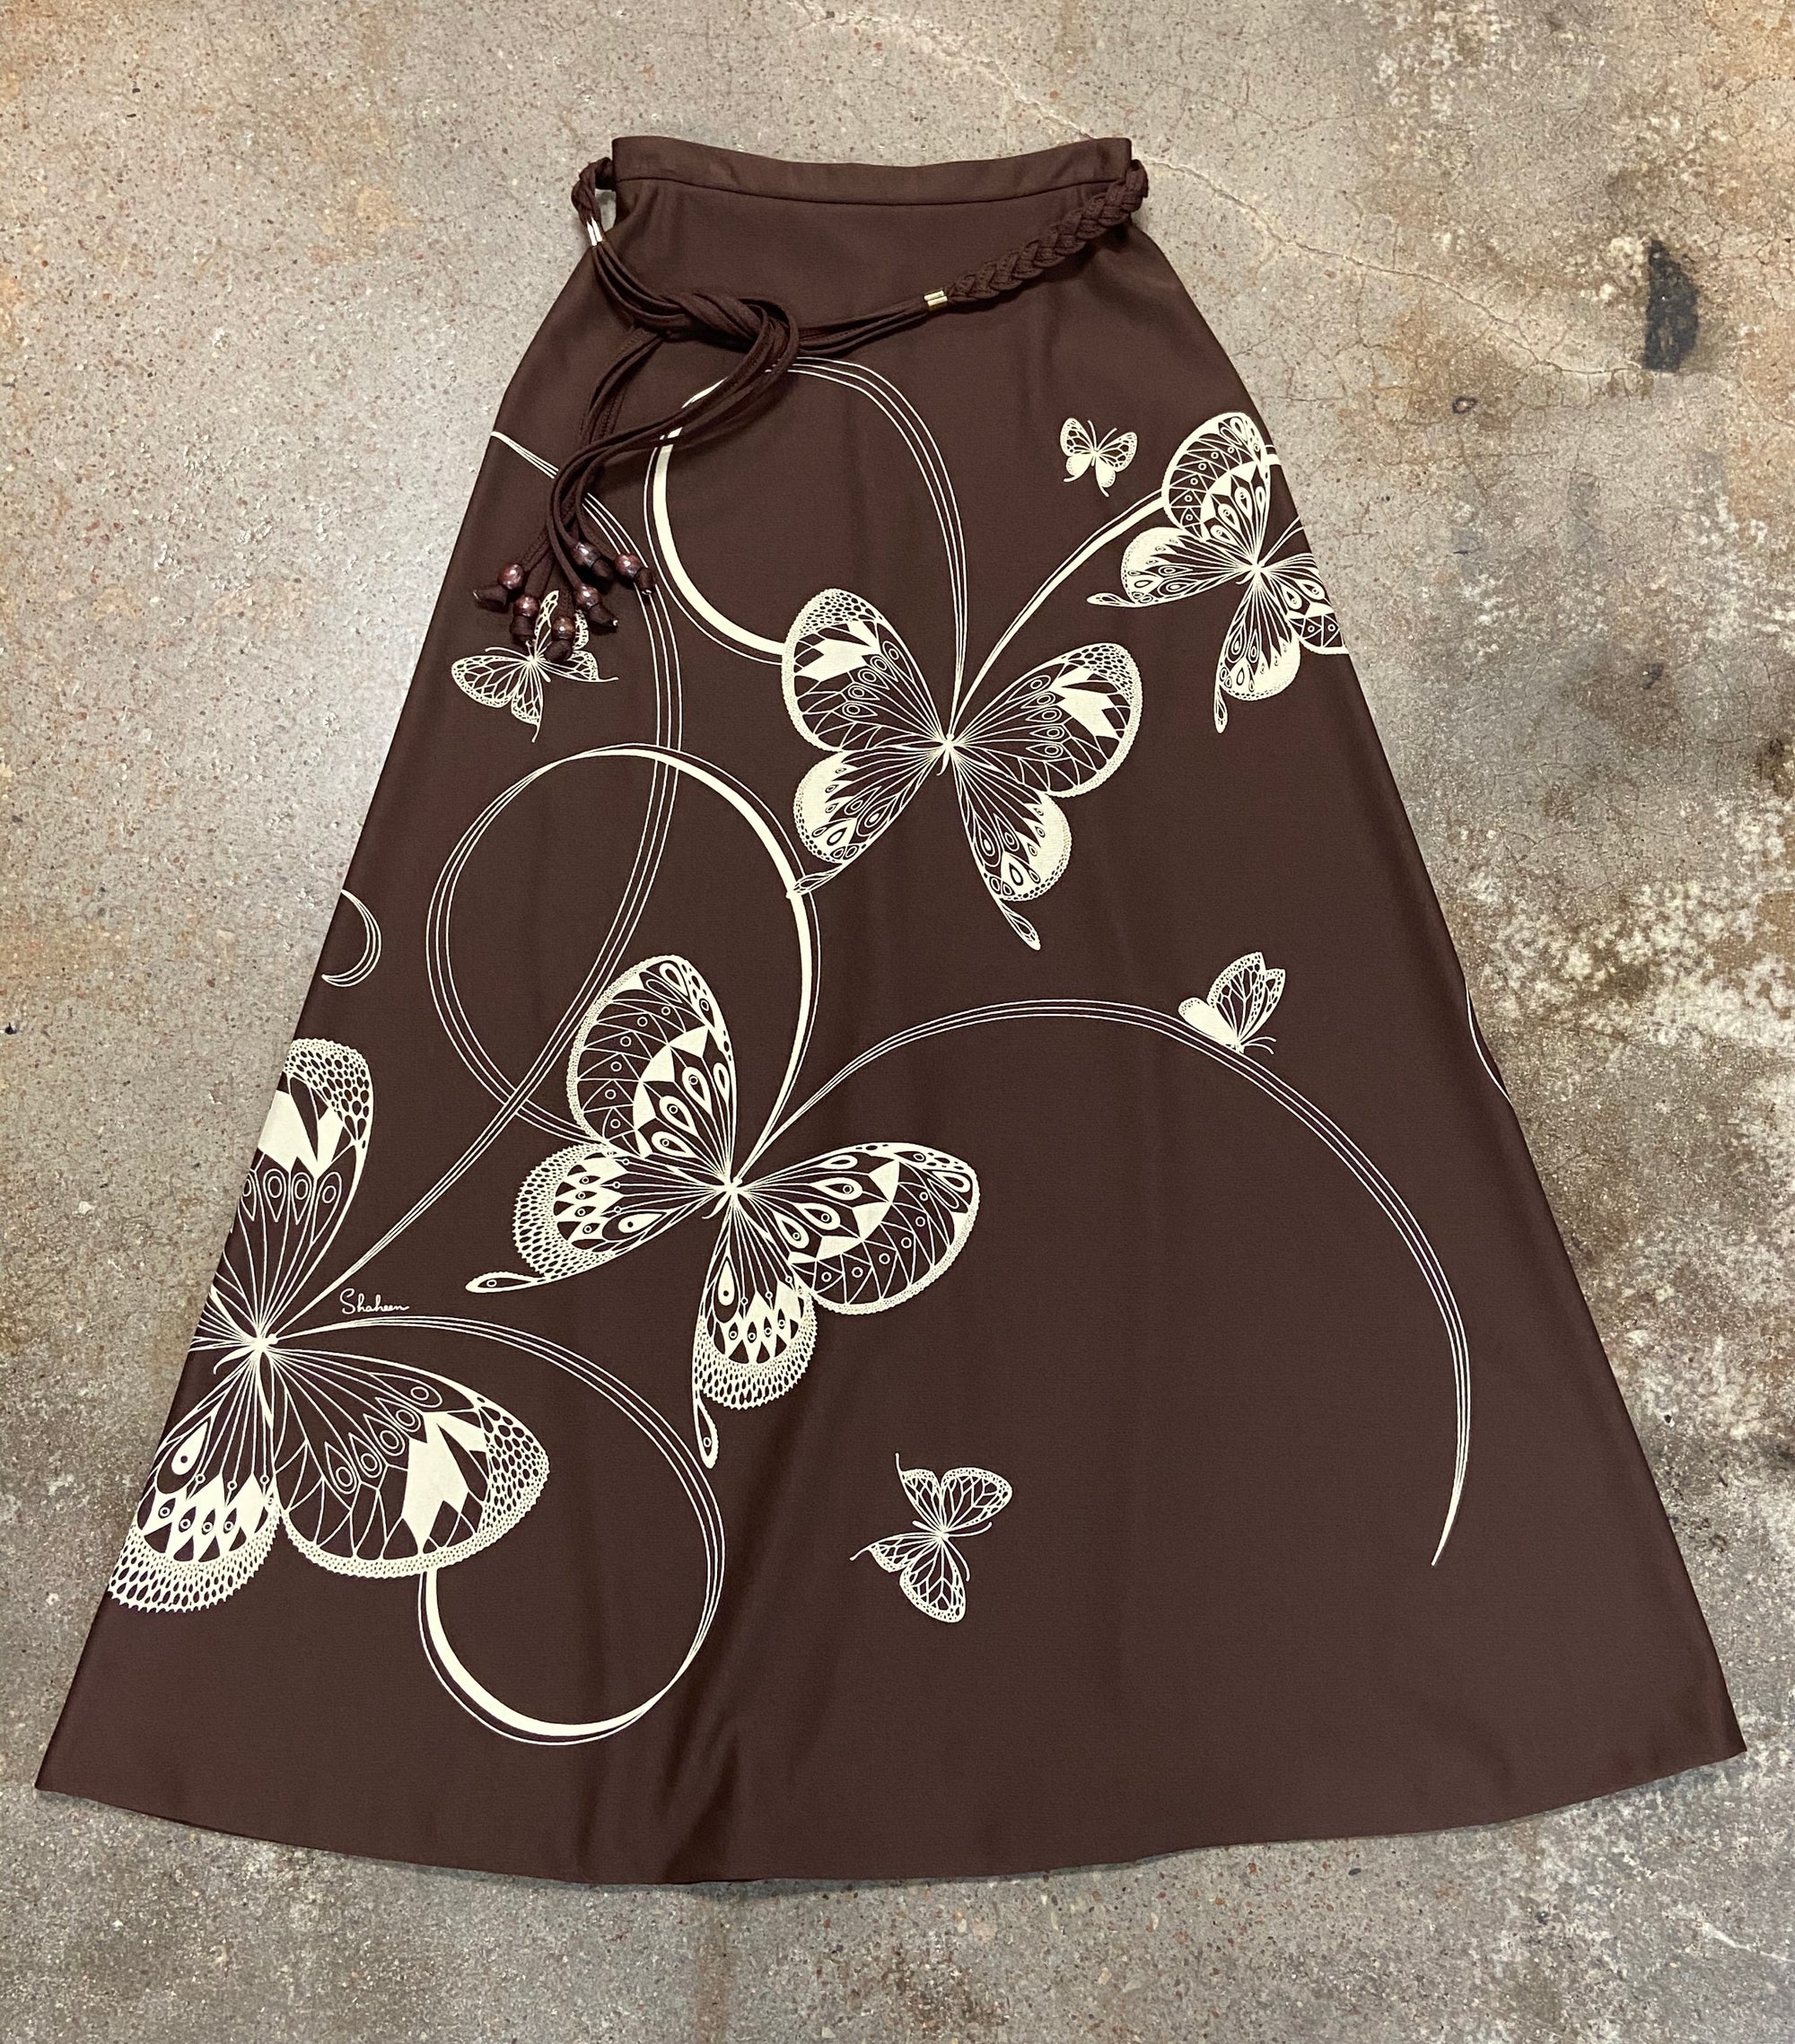 Vintage Miss Shaheen Dark Brown Butterflies Skirt Size 10